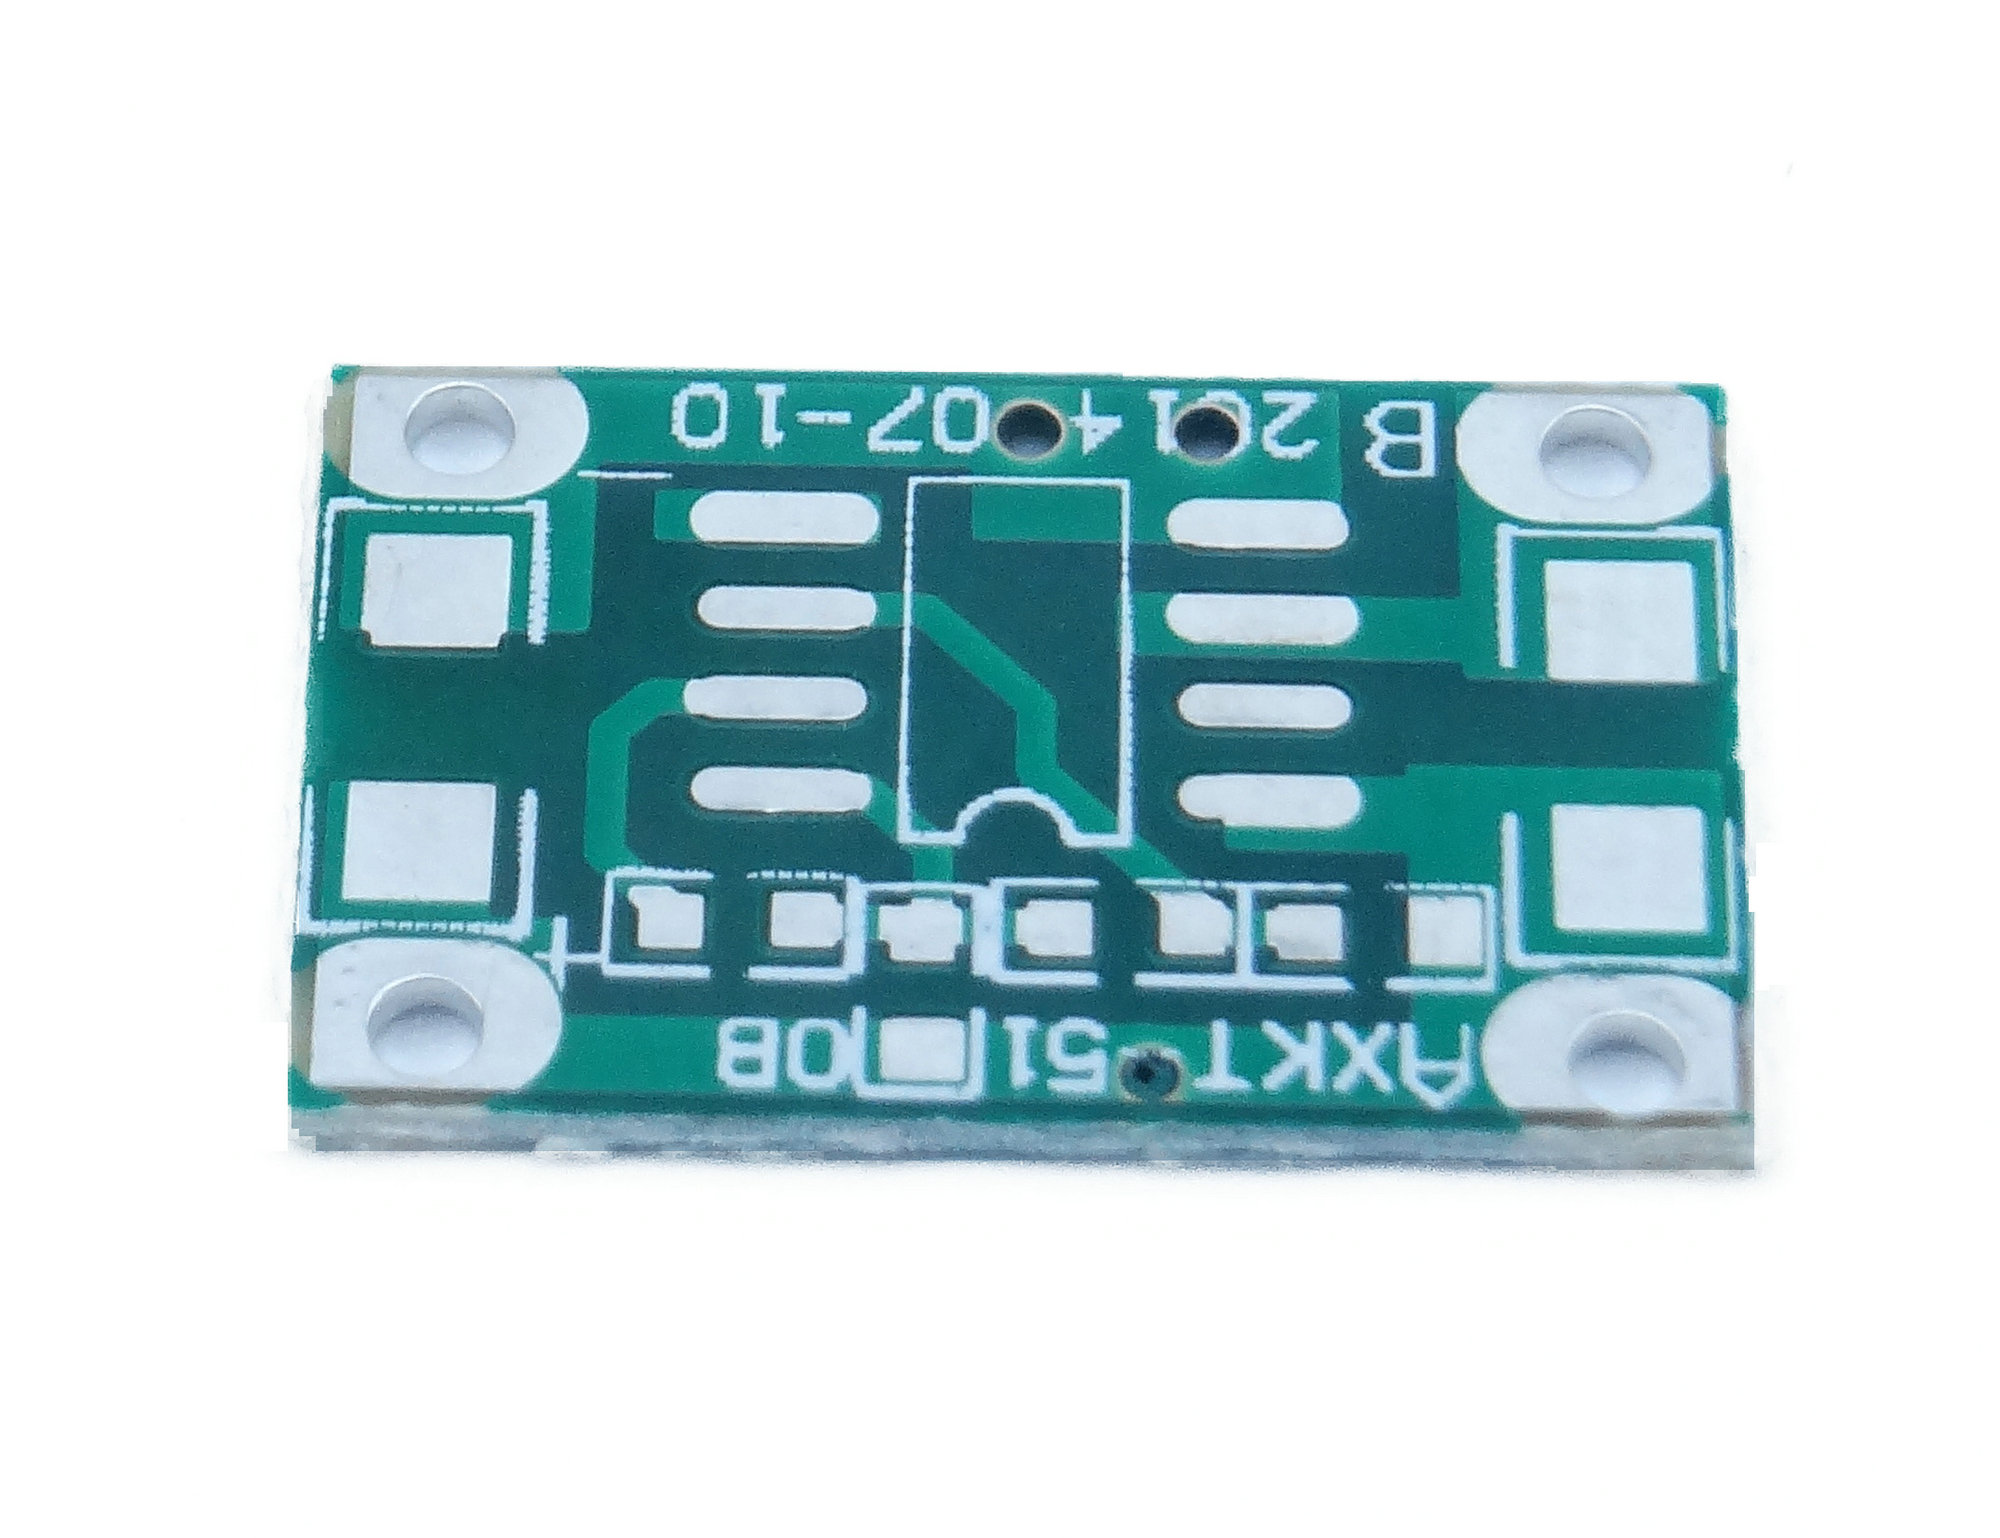 small resolution of 510 single chip series wireless charging power supply module circuit diagram pcb circuit board test board in instrument parts accessories from tools on